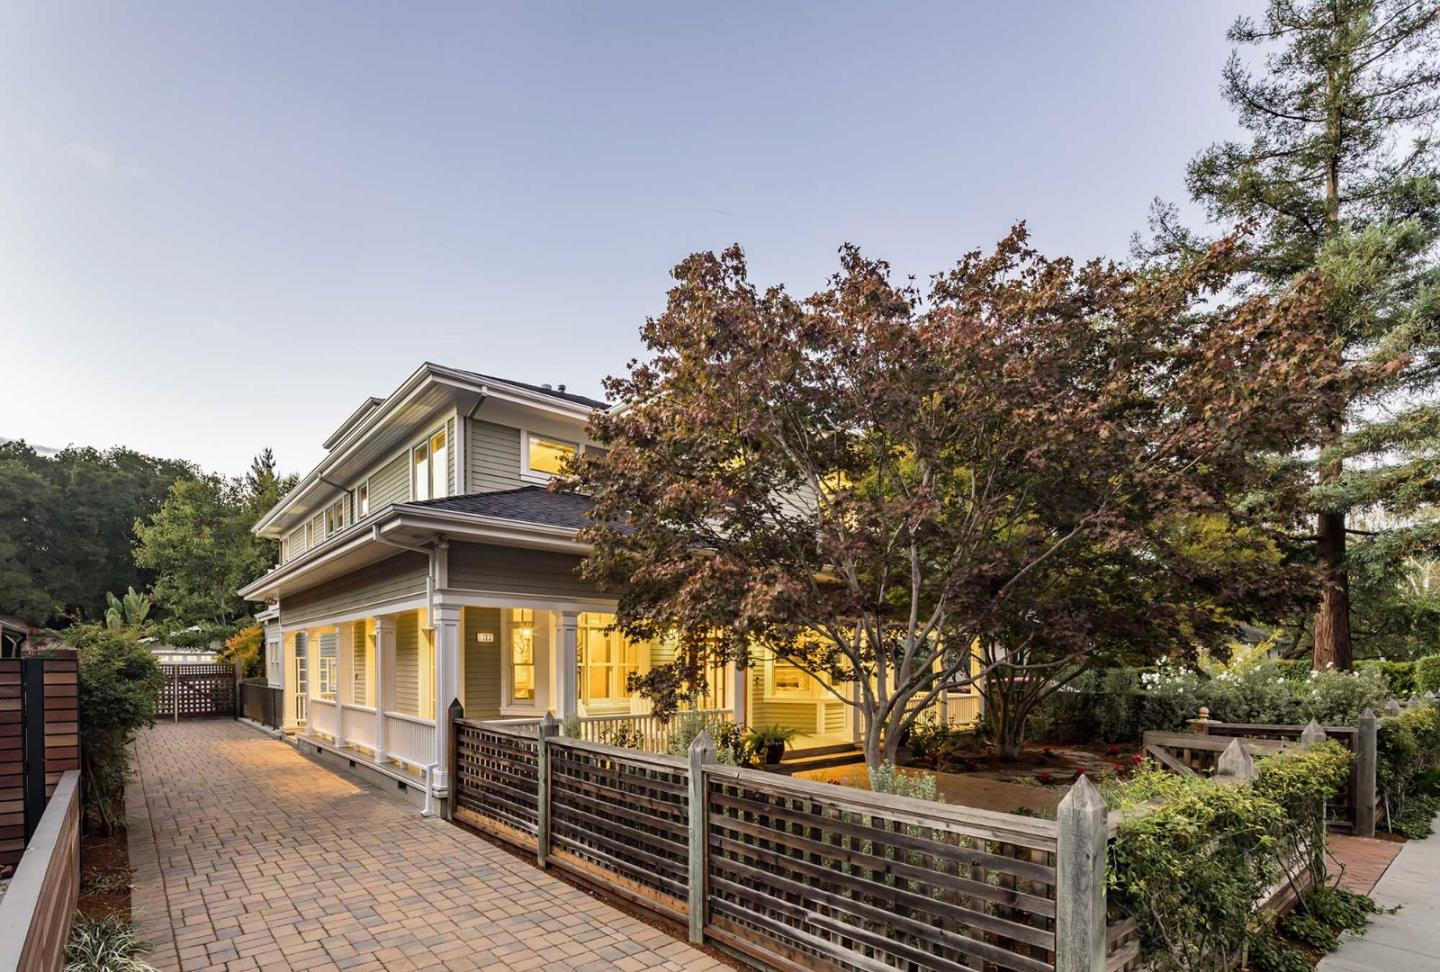 123 Tennyson AVE, Palo Alto, California